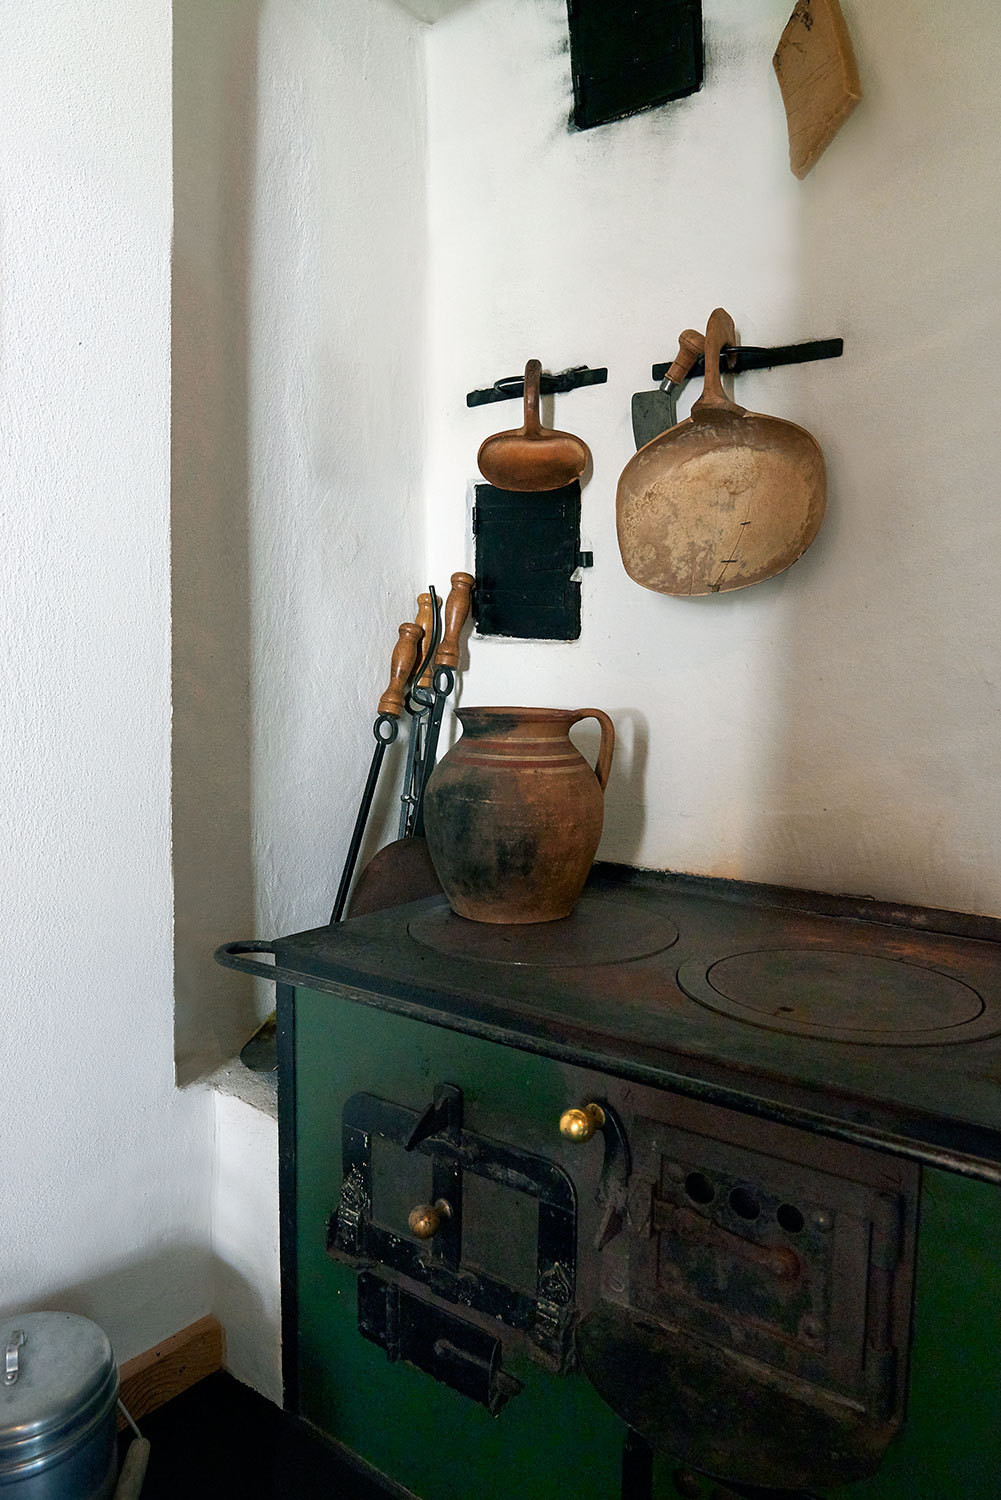 Antique utensils and ceramics top the circa-1850 wood-burning stove, a stately presence in the entryway.